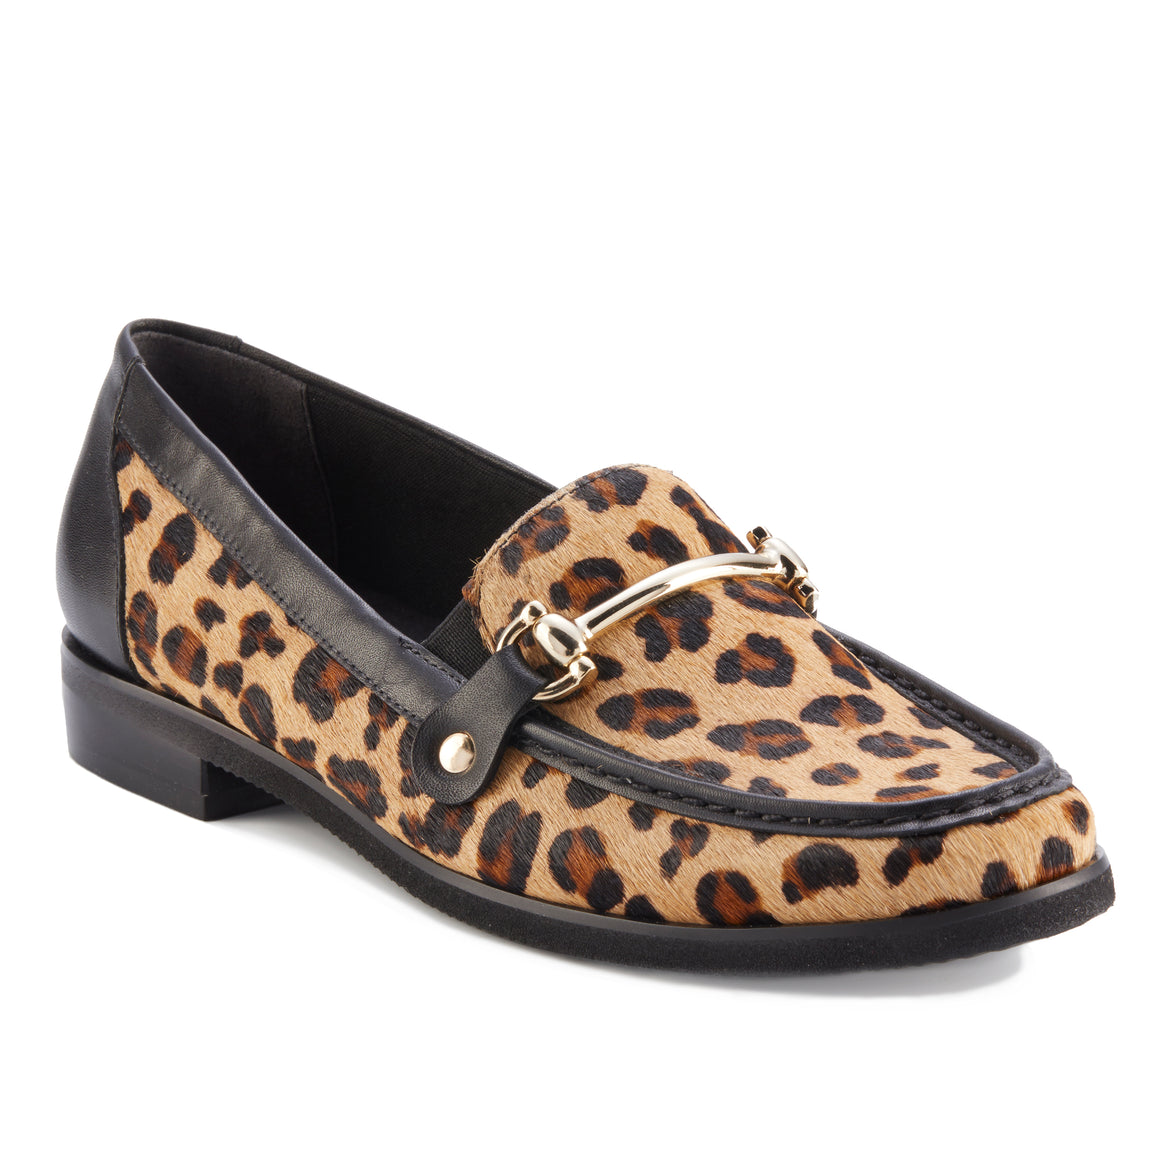 Wren: Leopard Calf Hair LIMITED STOCK